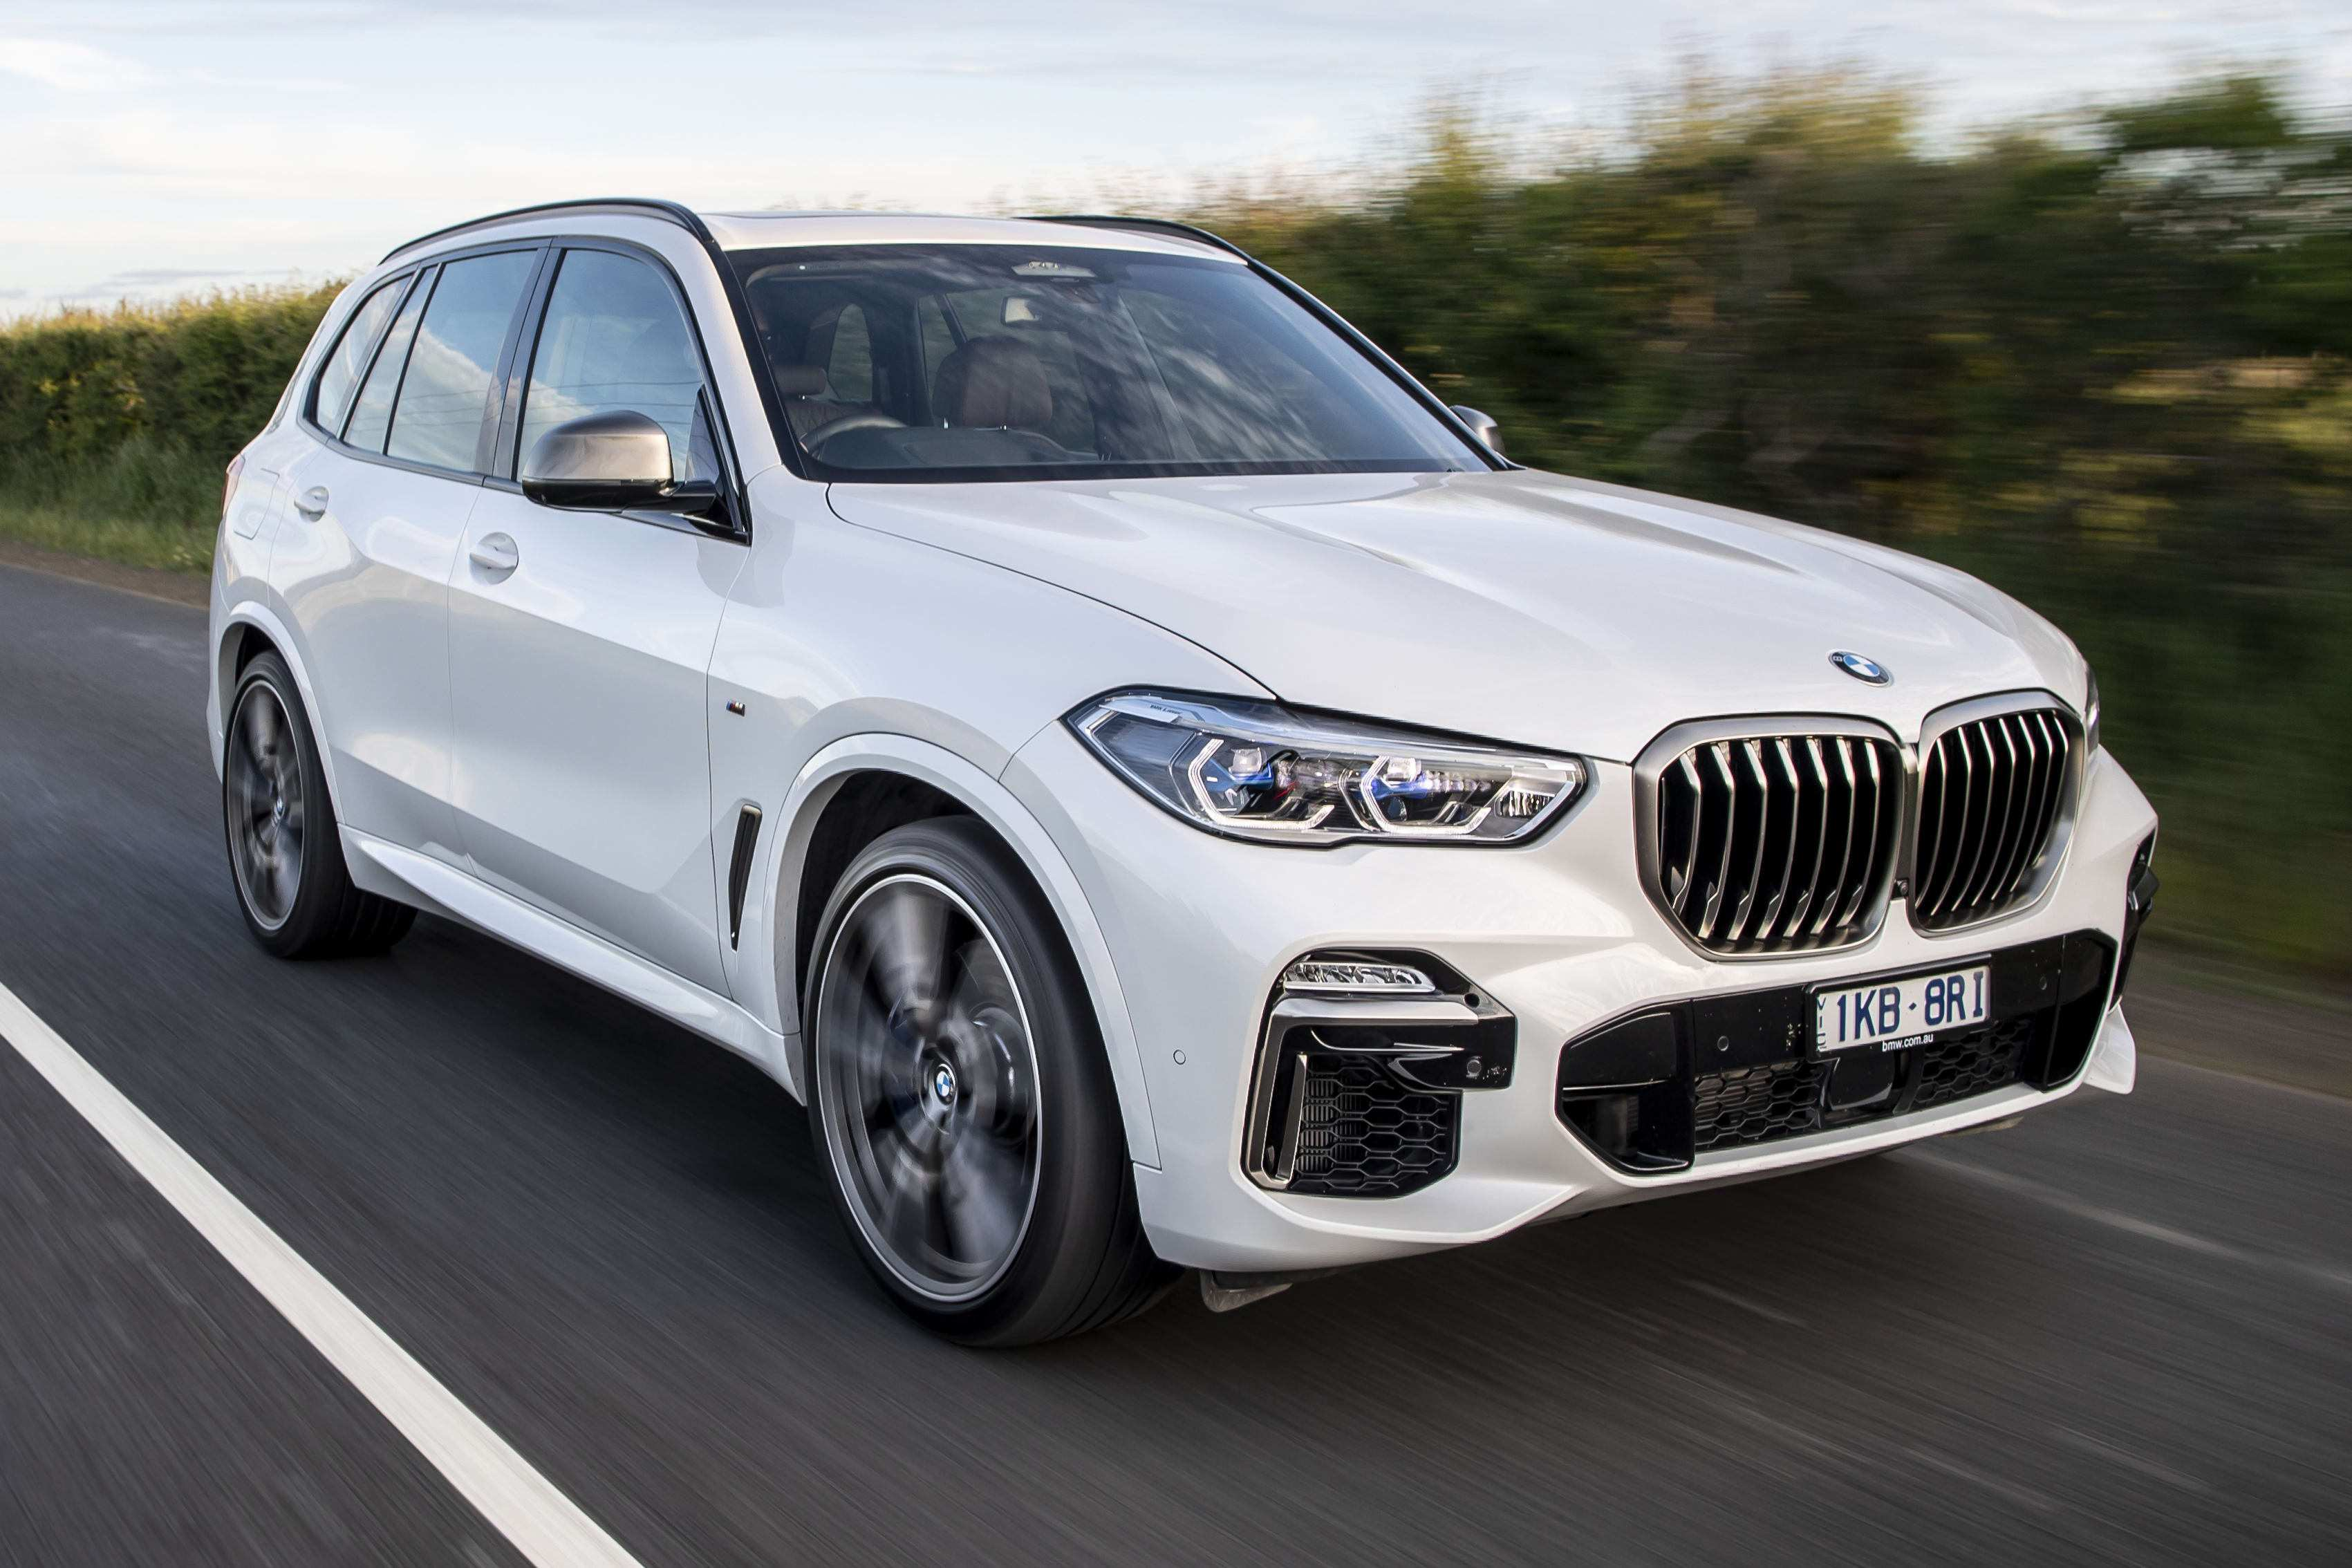 16 Great Review Of 2019 Bmw X5 Performance Ratings for Review Of 2019 Bmw X5 Performance